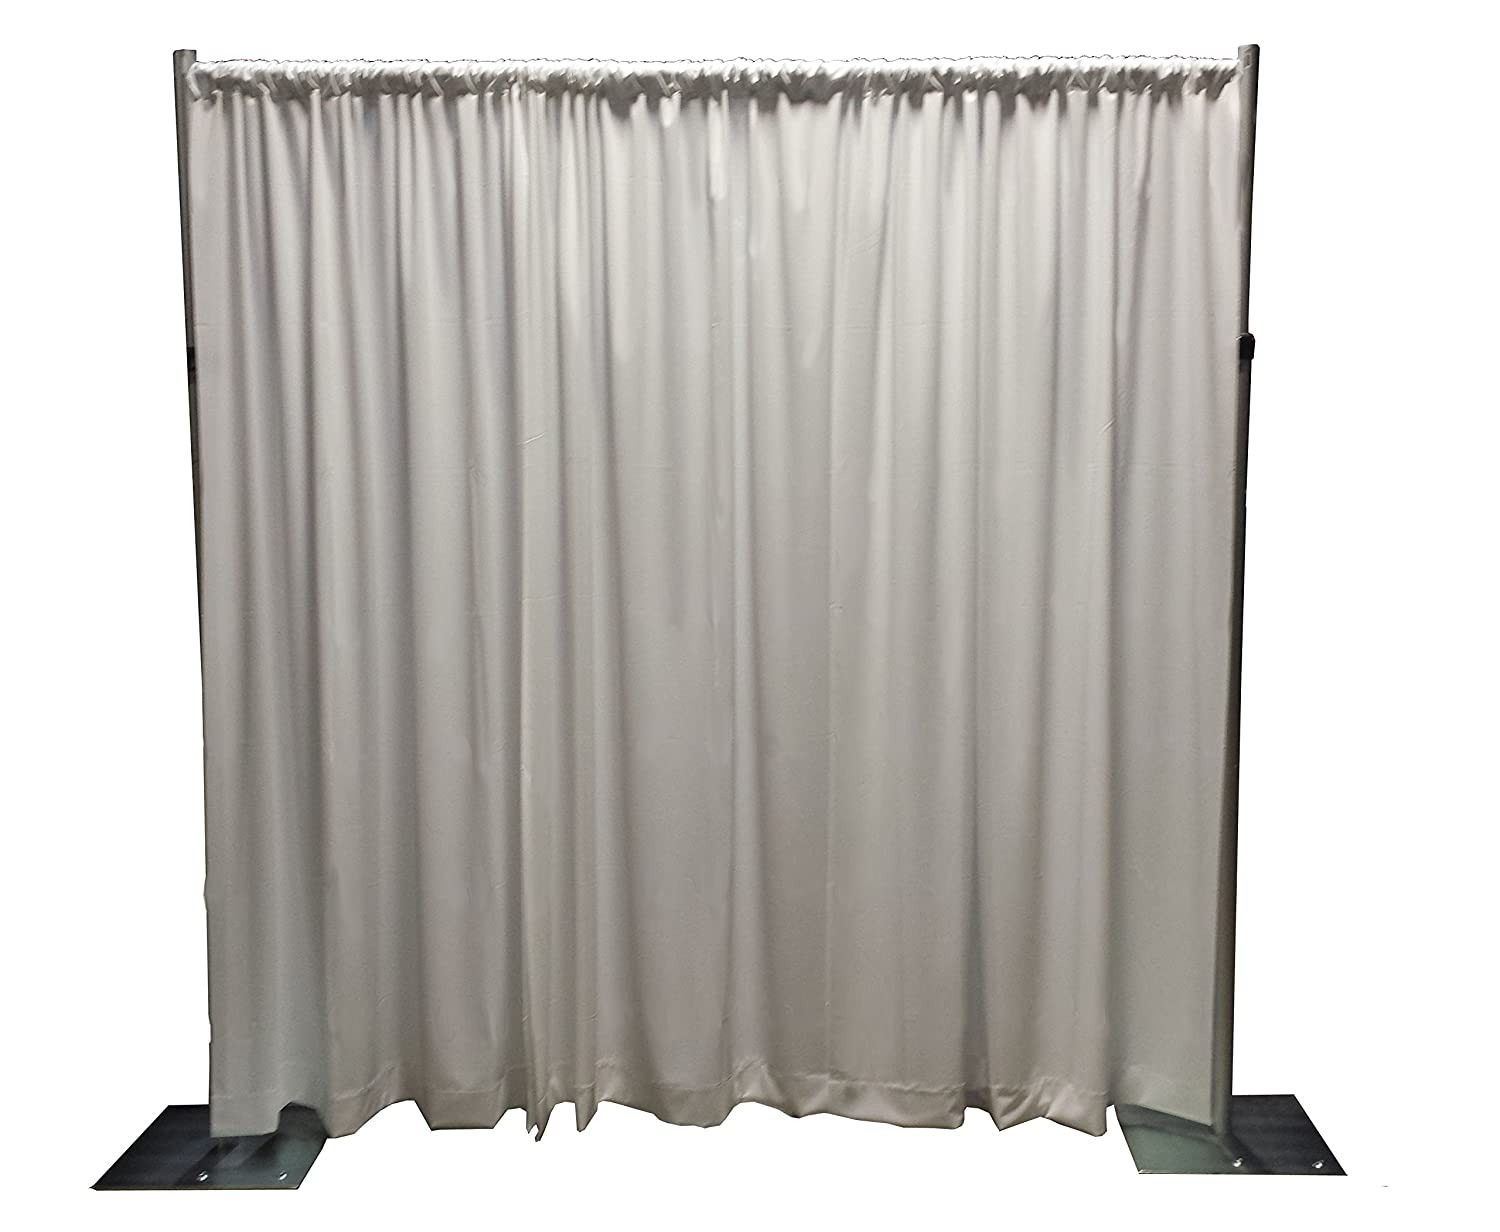 pipe drapes ge backdrop and meters pro panel wide drape adjustable c ft kits store kit